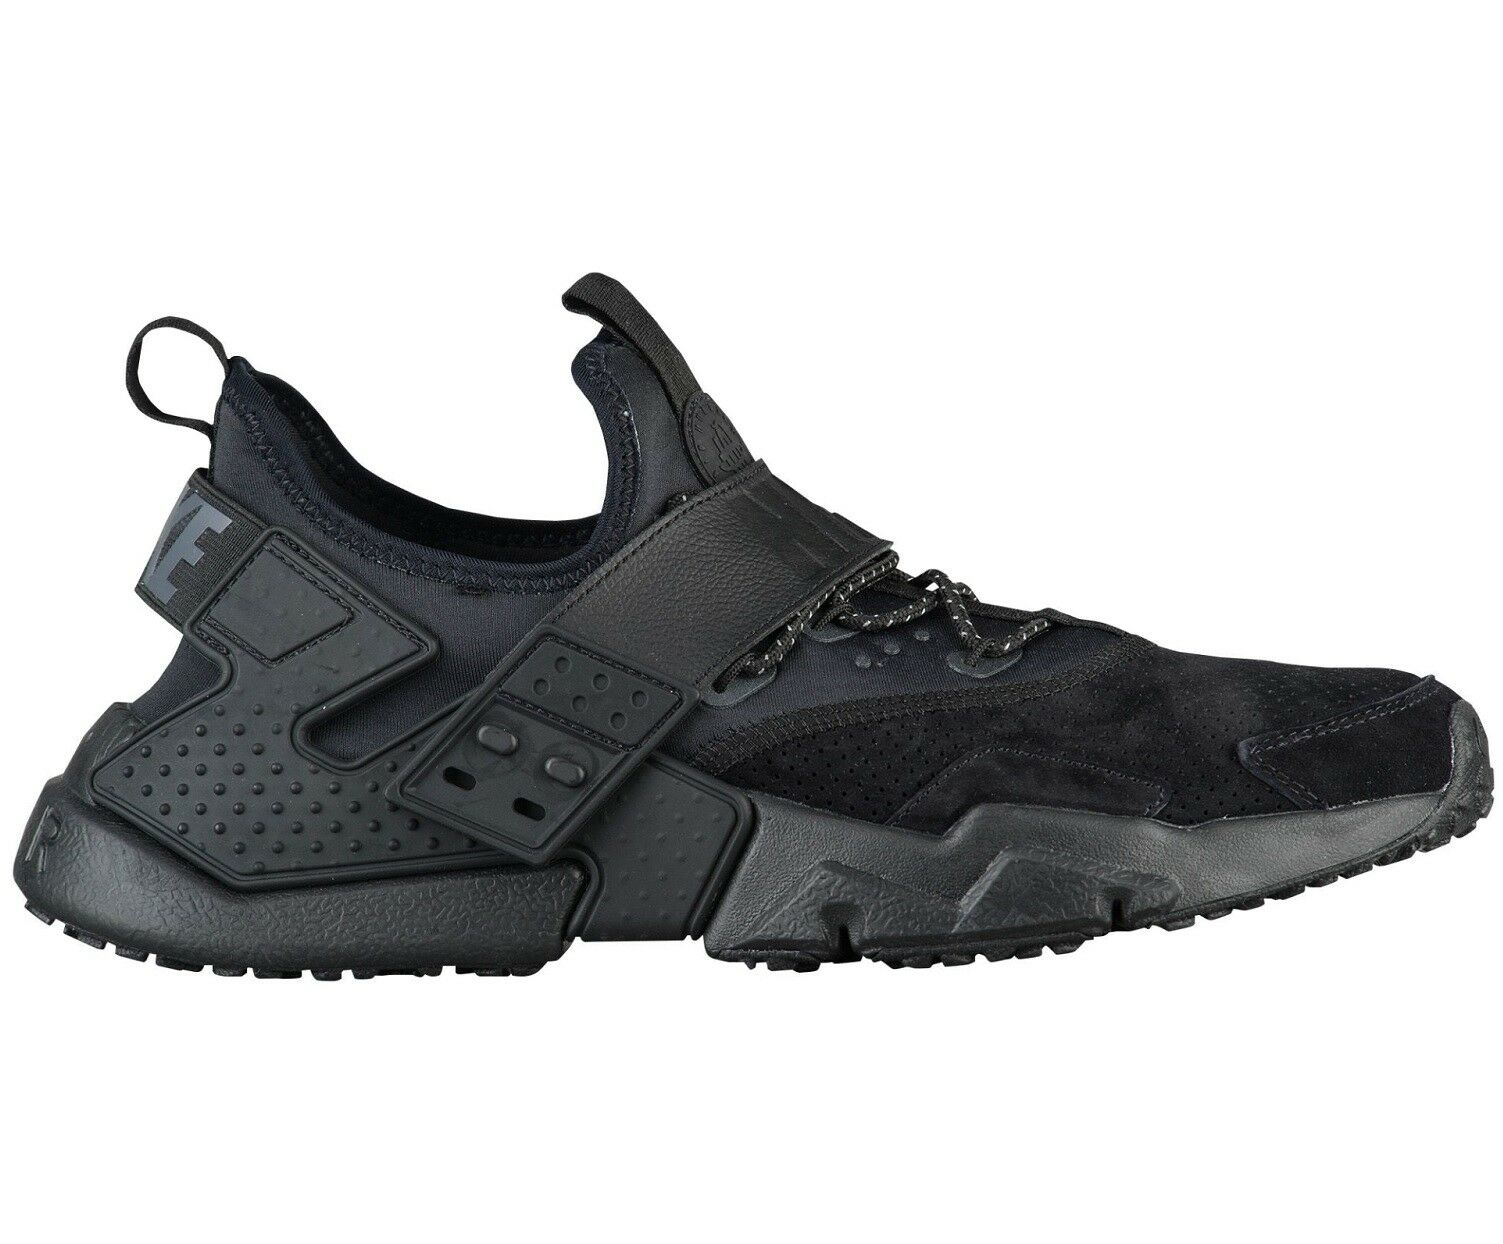 Nike Air Huarache Drift Premium Mens AH7335-001 Black Running Shoes Comfortable Comfortable and good-looking